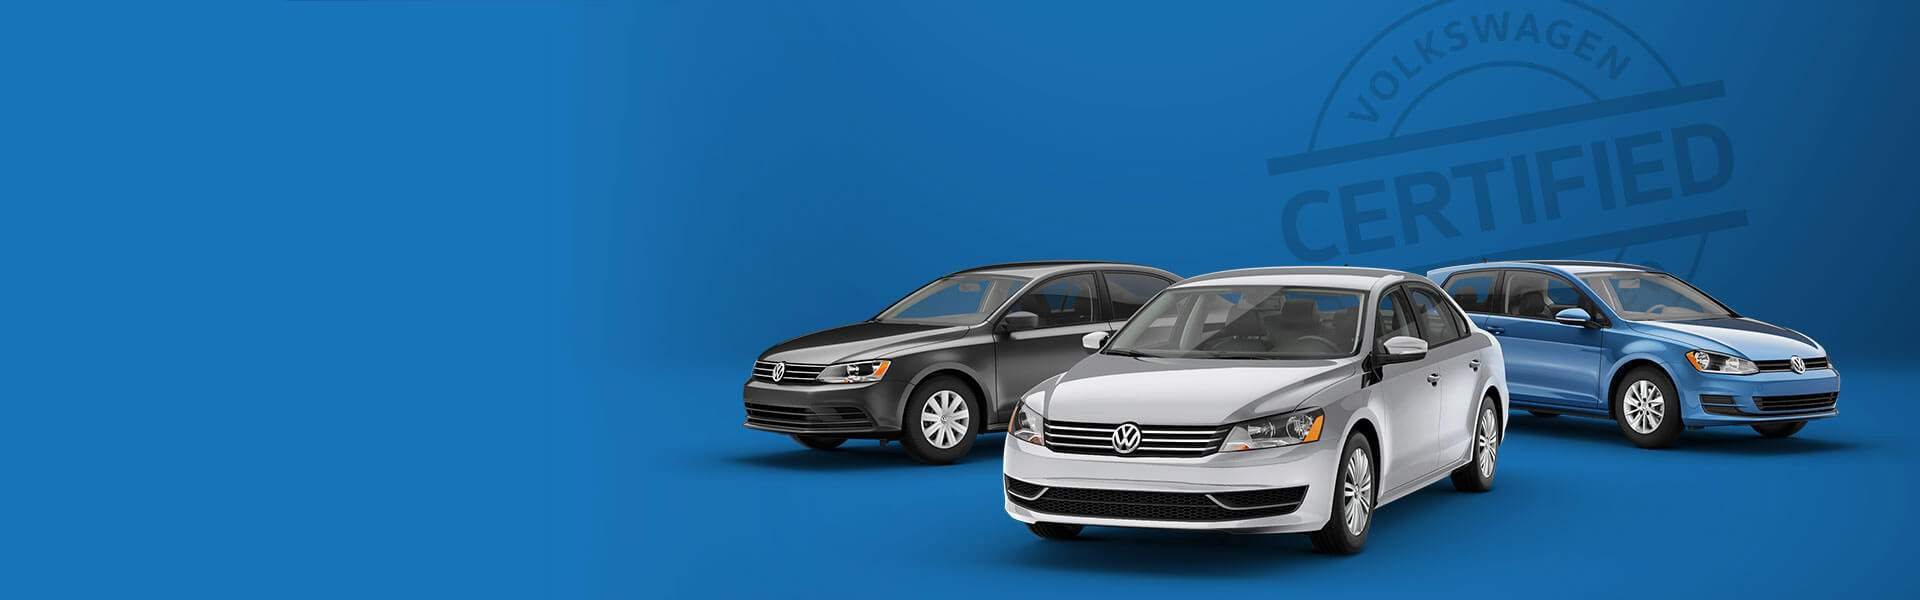 Volkswagen Certified Pre-Owned in Elgin, IL